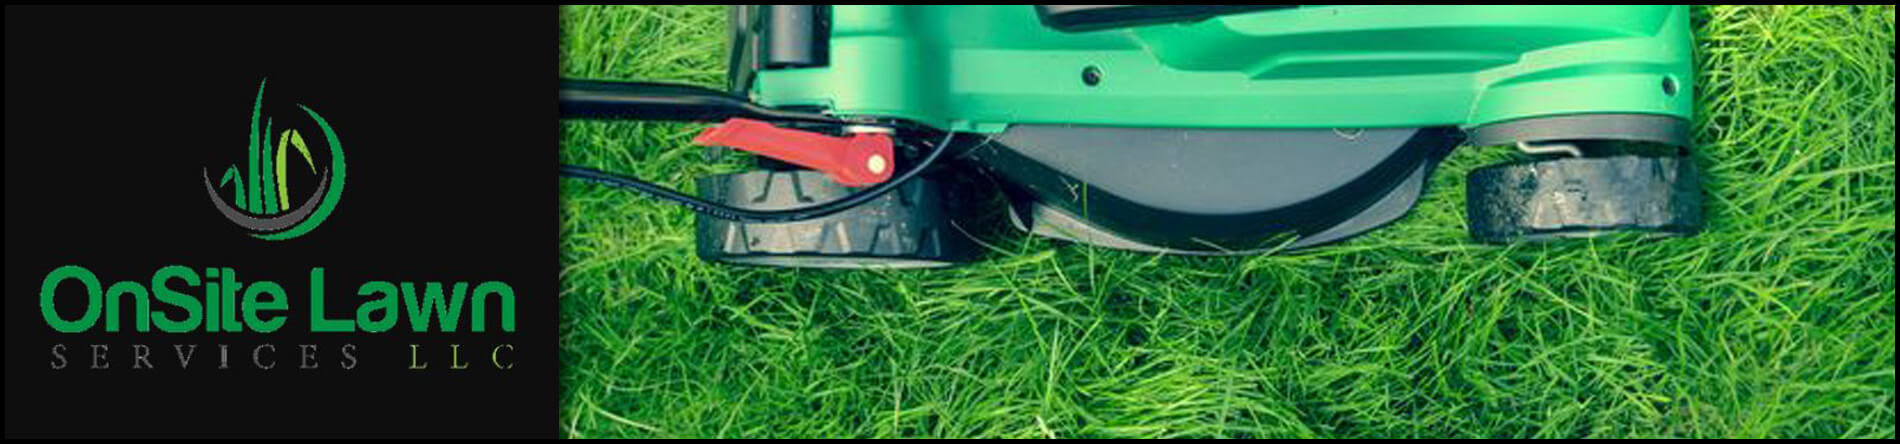 OnSite Lawn Services, LLC is a Lawn Care Company in Northglenn, CO